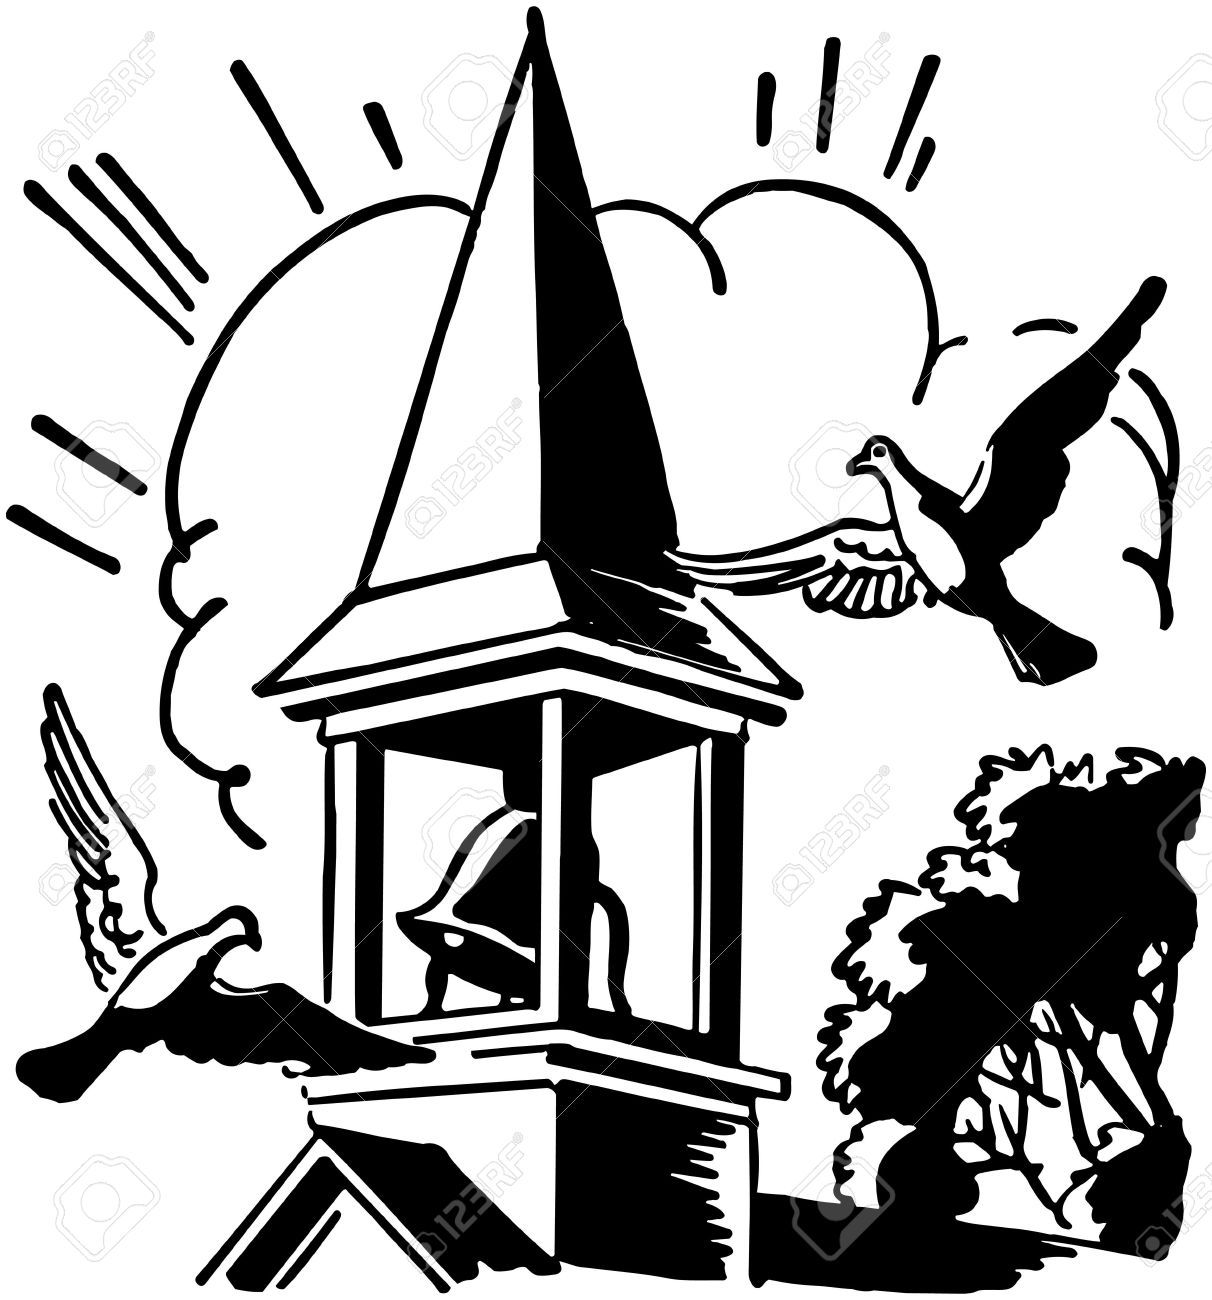 Bell tower clipart 5 » Clipart Portal.